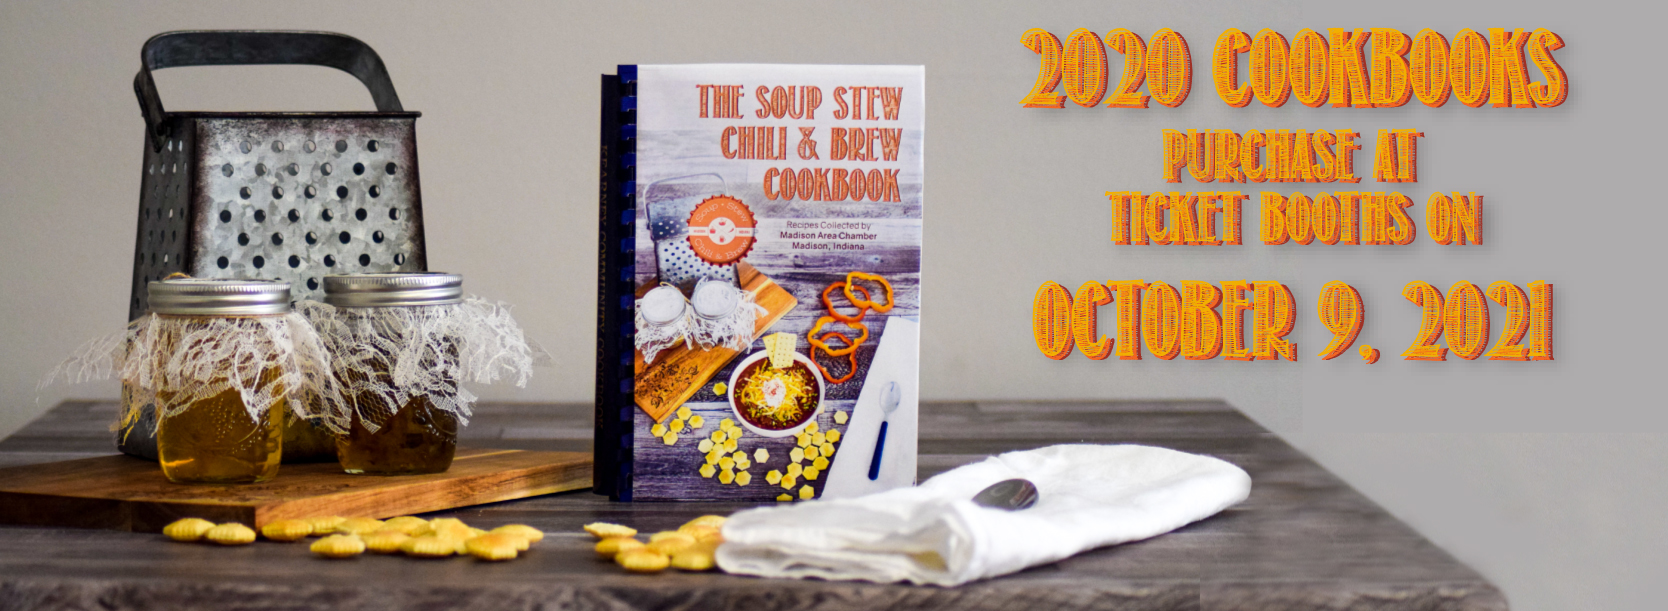 cookbook-banner-purchase-at-ticket-booths-oct-9-2021